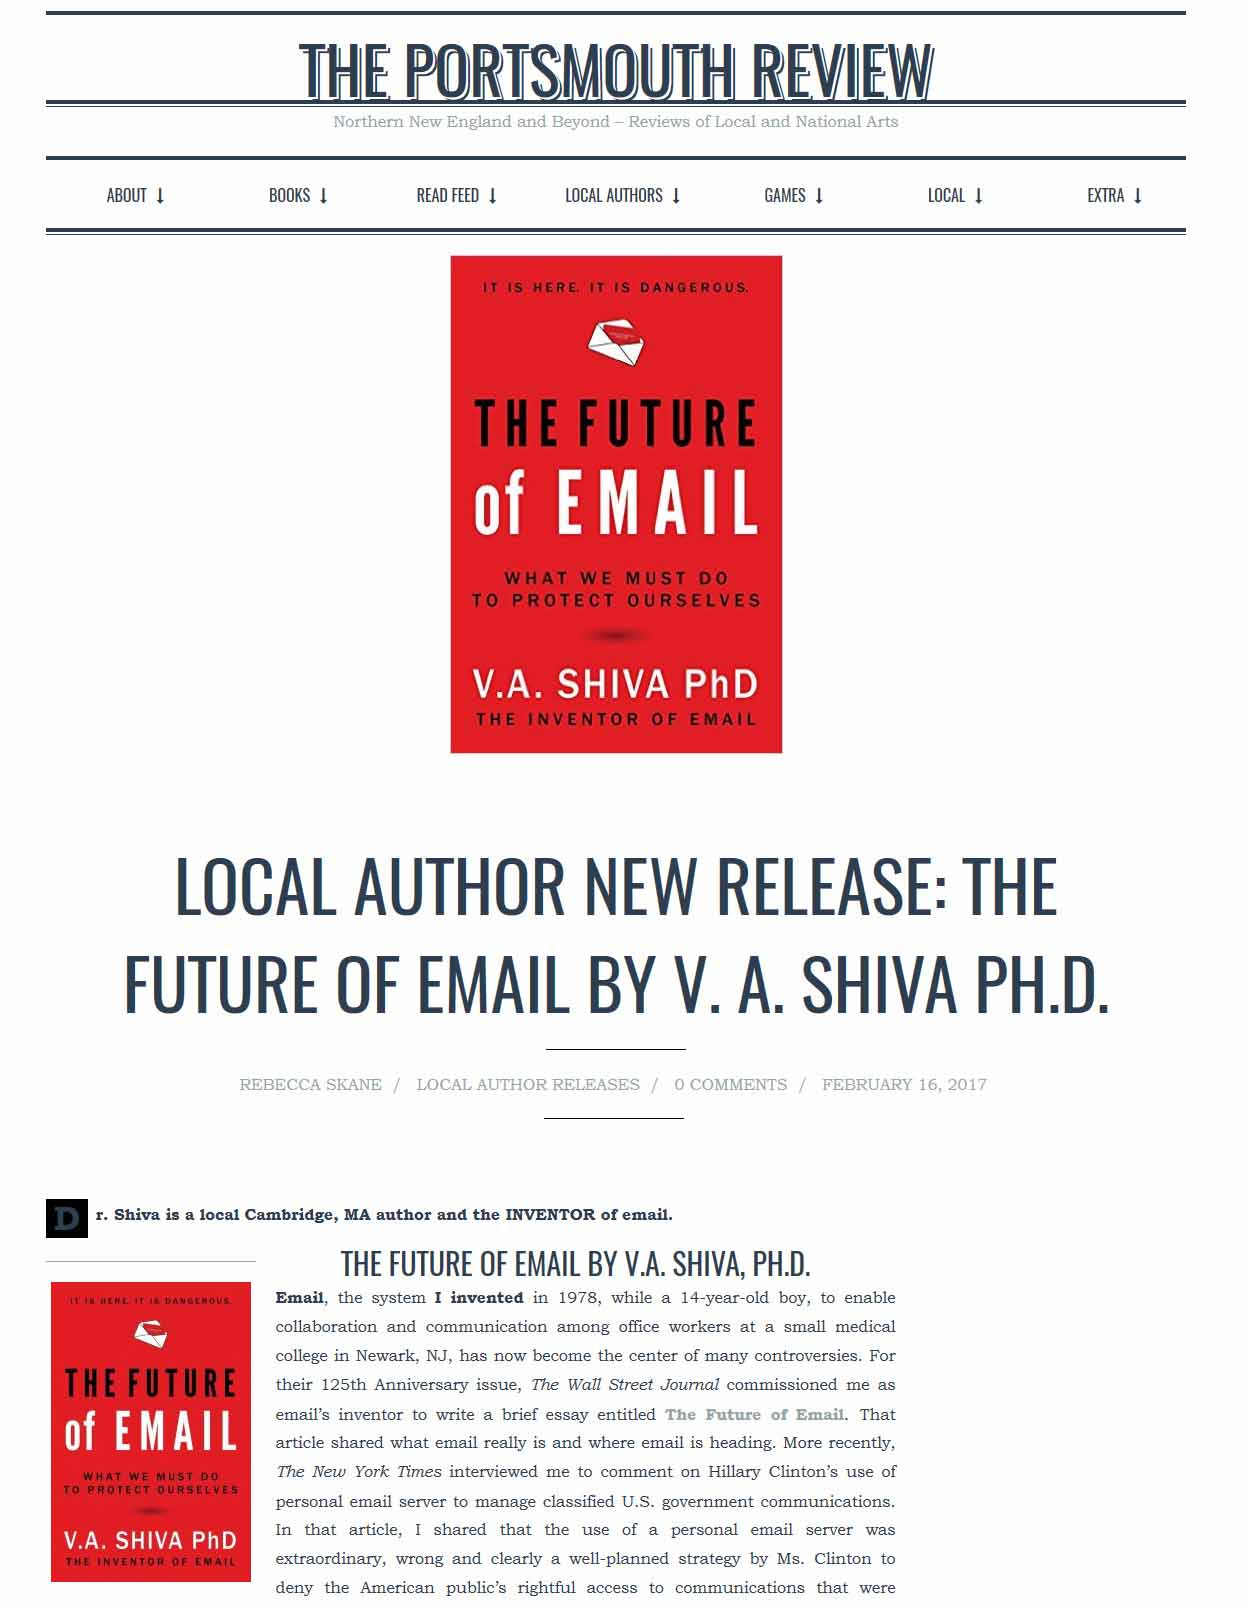 Local Author New Release: The Future Of Email By V. A. Shiva Ph.D.